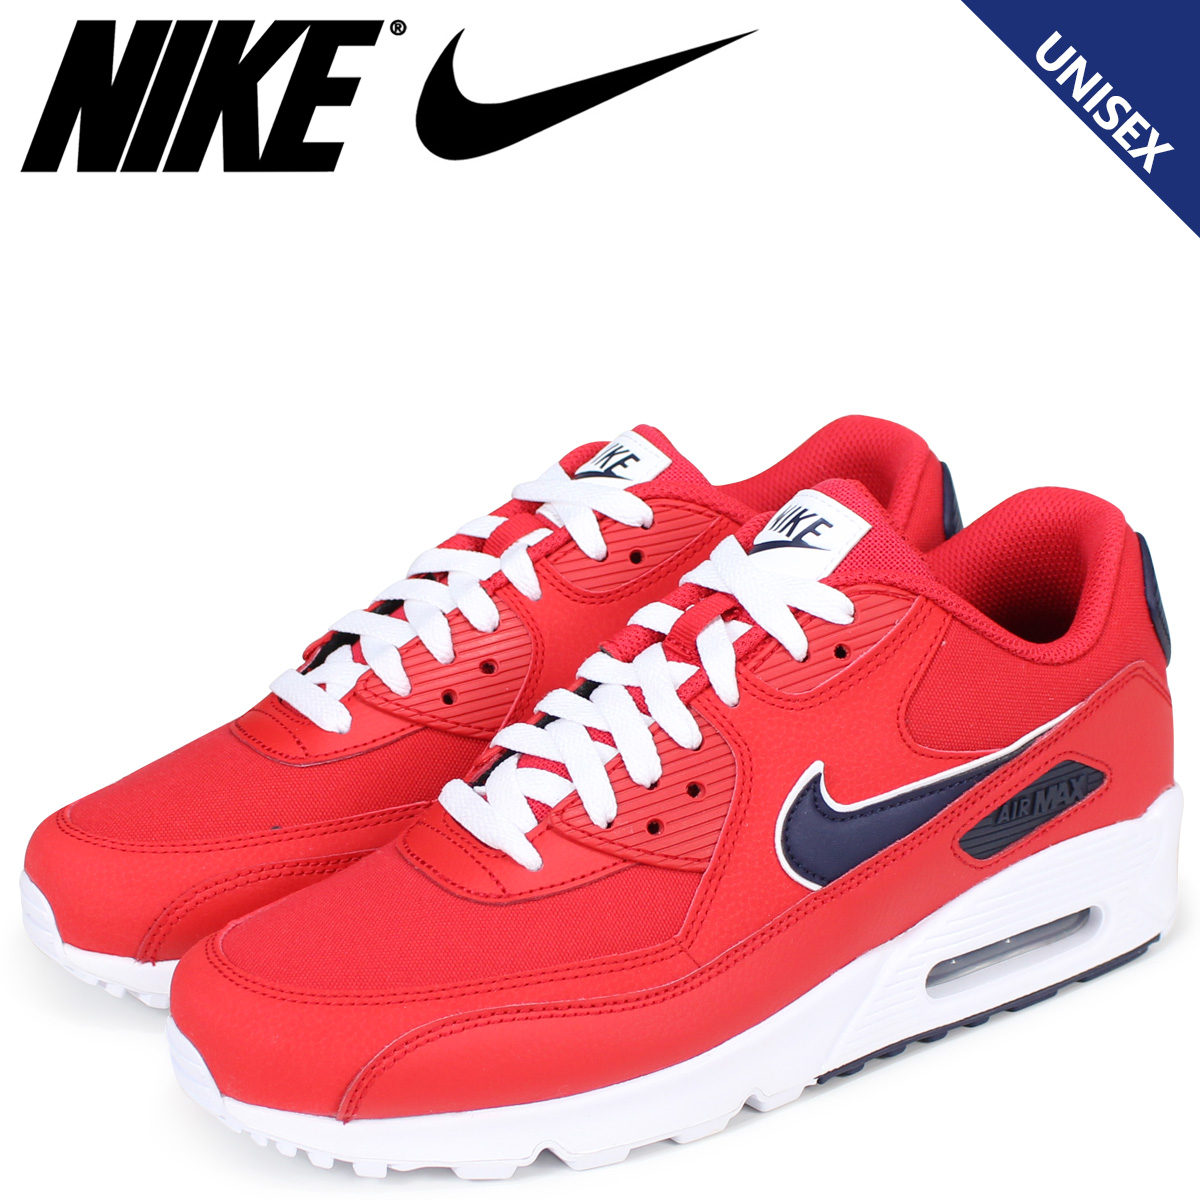 low priced f2a55 416b6 NIKE Kie Ney AMAX 90 essential sneakers men AIR MAX 90 ESSENTIAL AJ1285-601  red  load planned Shinnyu load in reservation product 6 28 containing